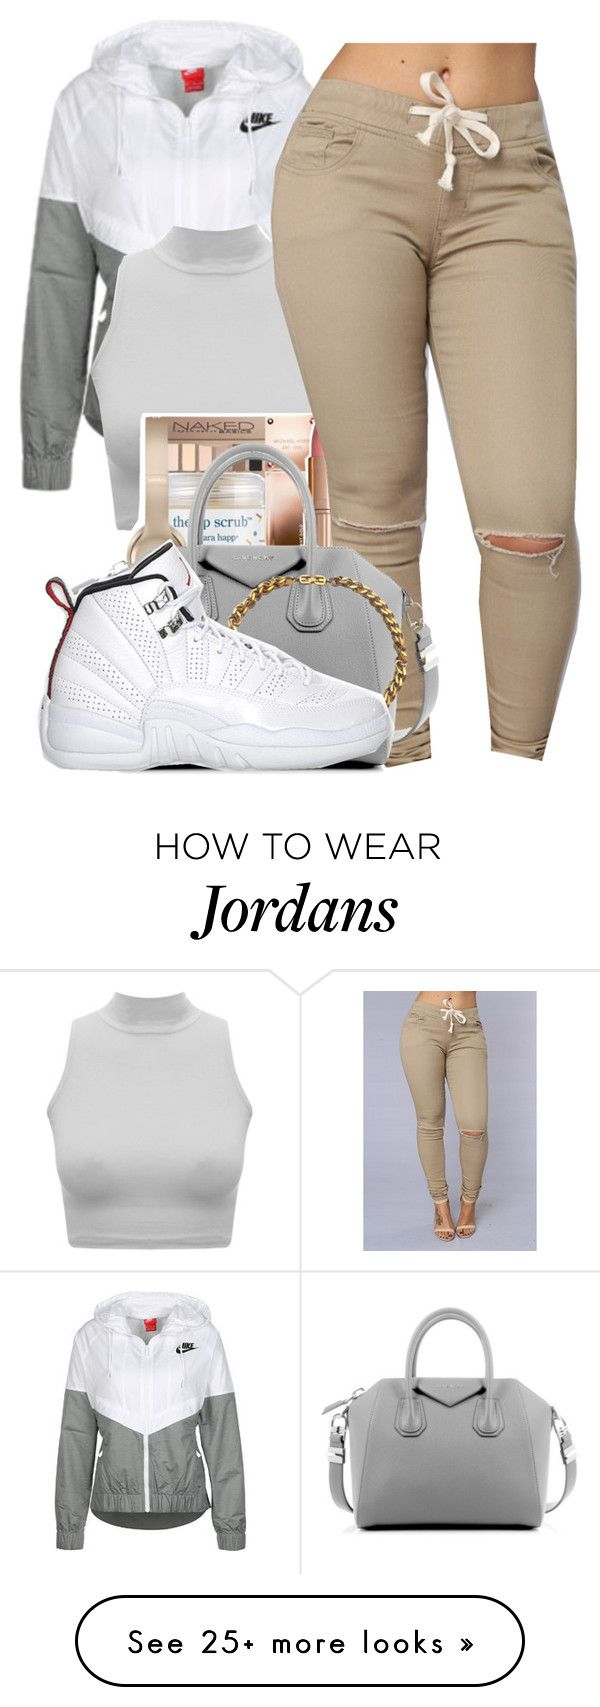 """""""SIMPLE"""" by alexanderbianca on Polyvore featuring NIKE, Givenchy and Retrò"""